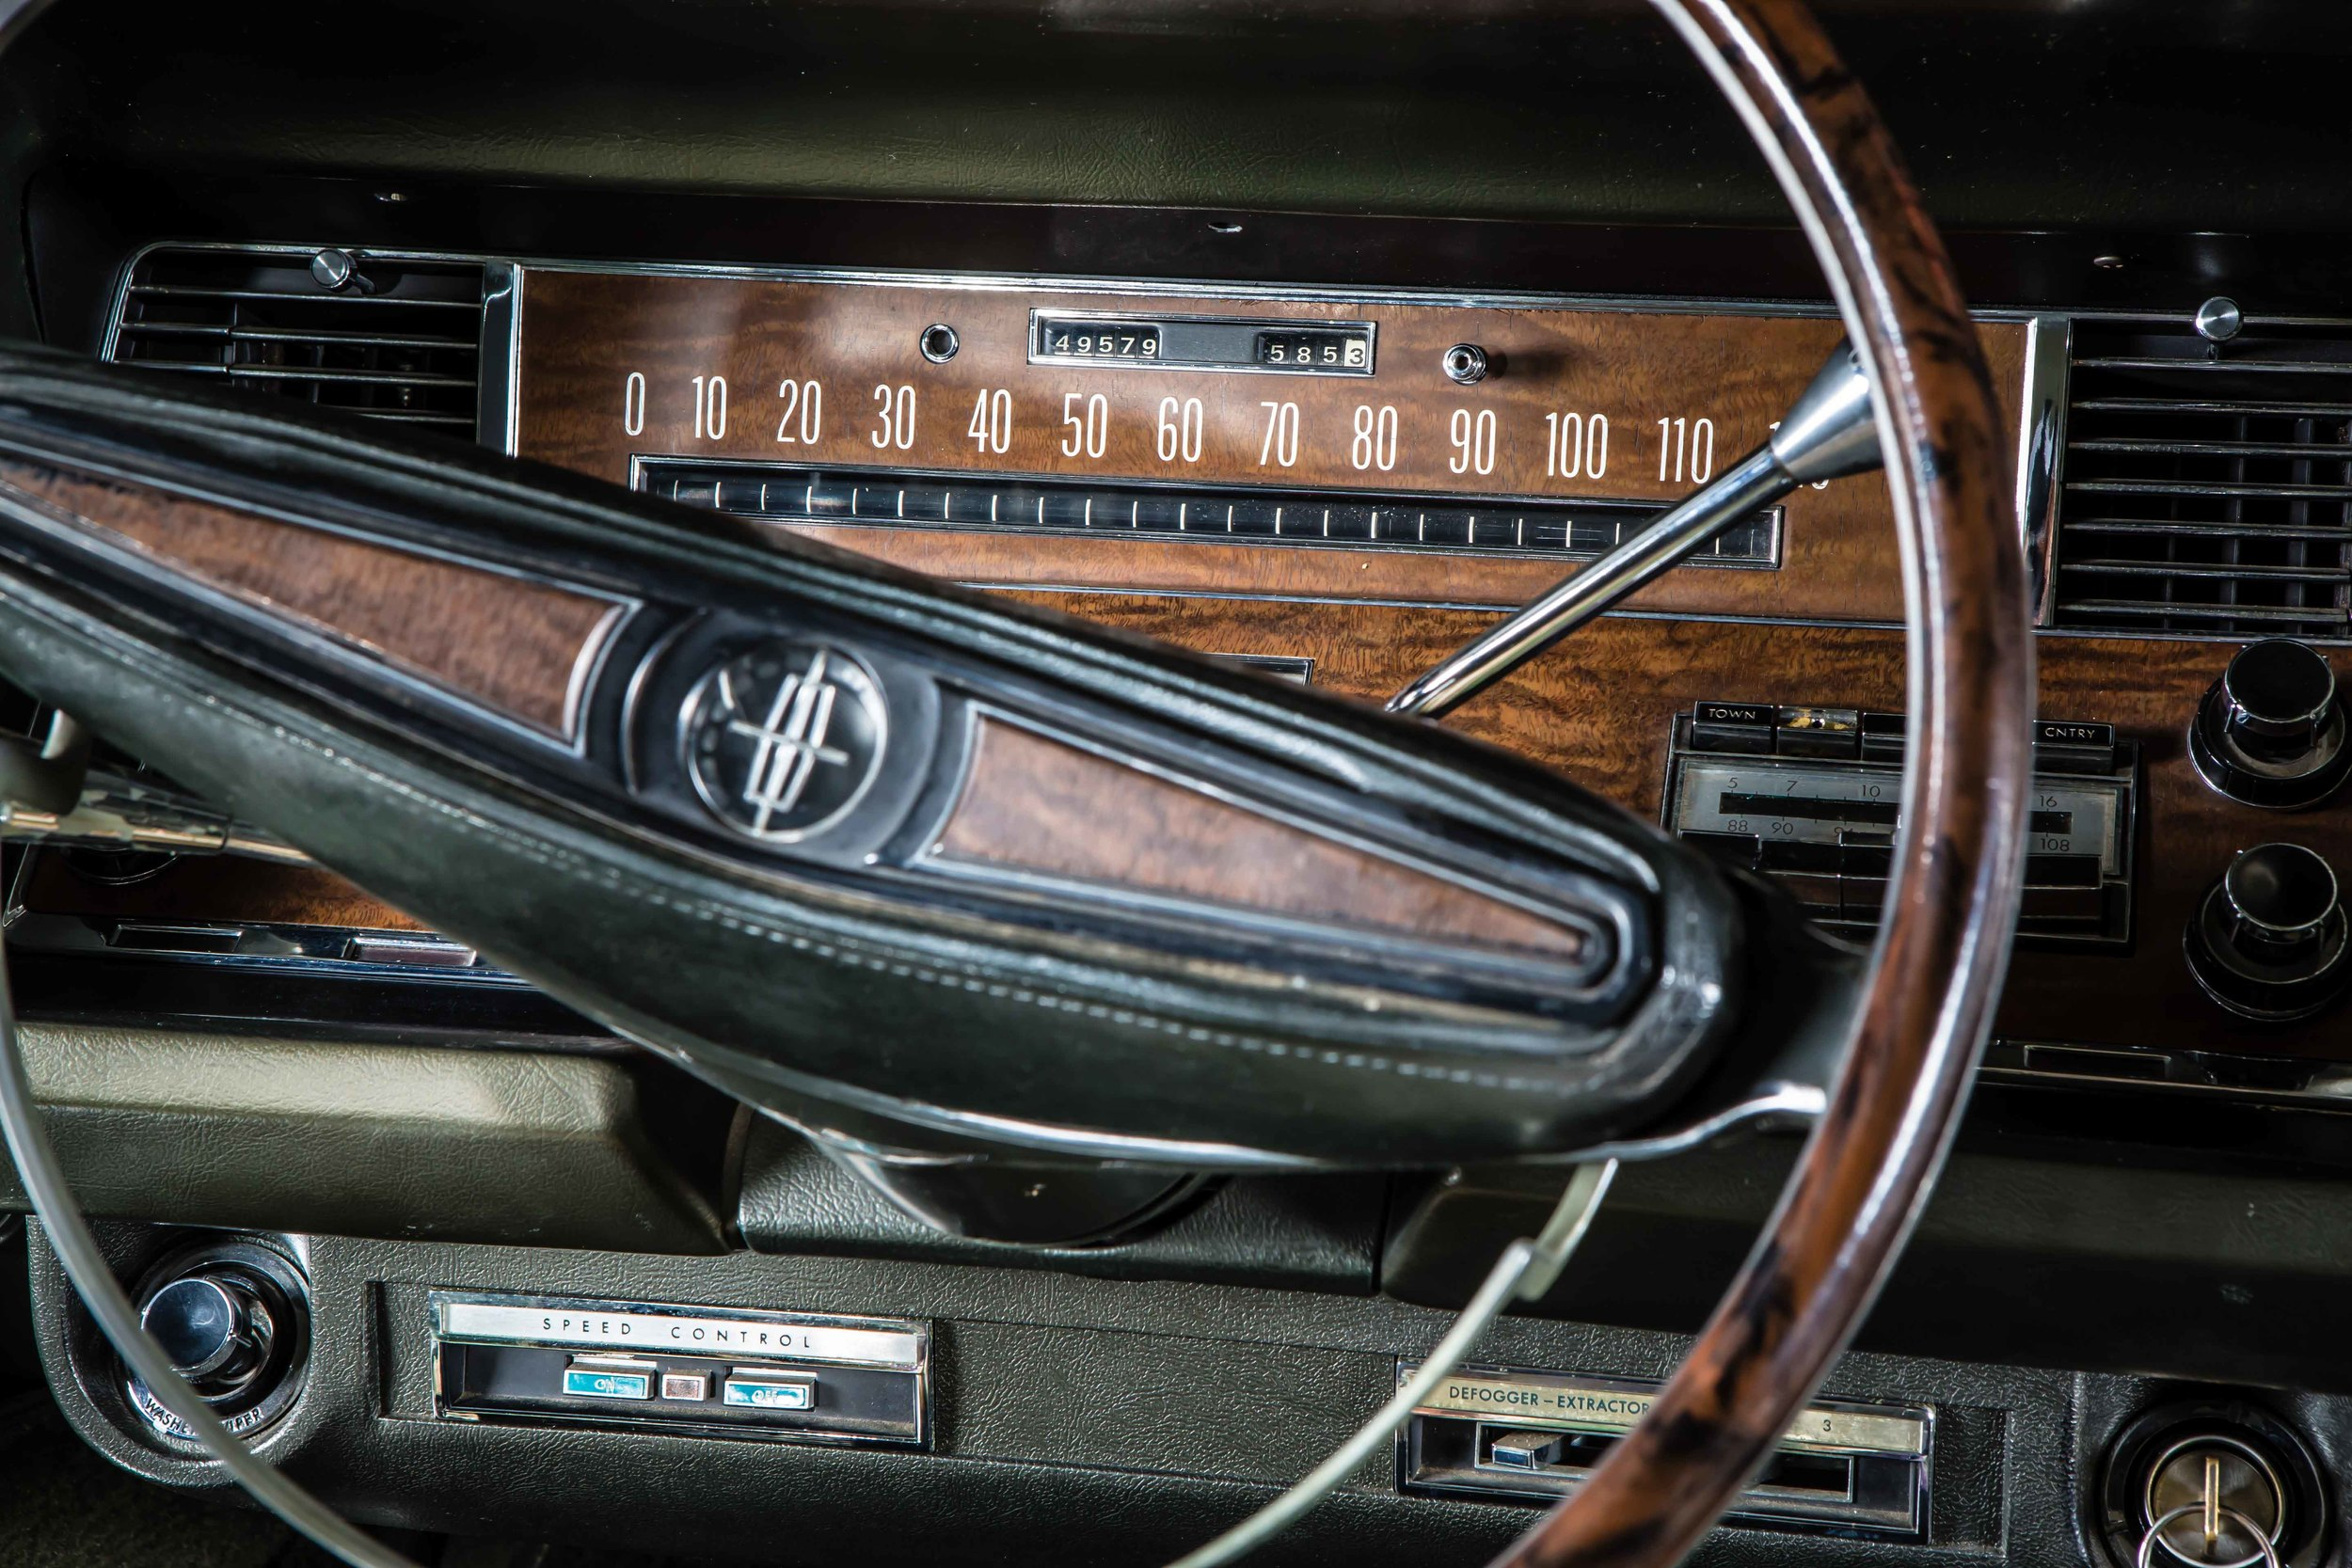 Anaheim Rod and Custom 68 Lincoln Continental -40.jpg